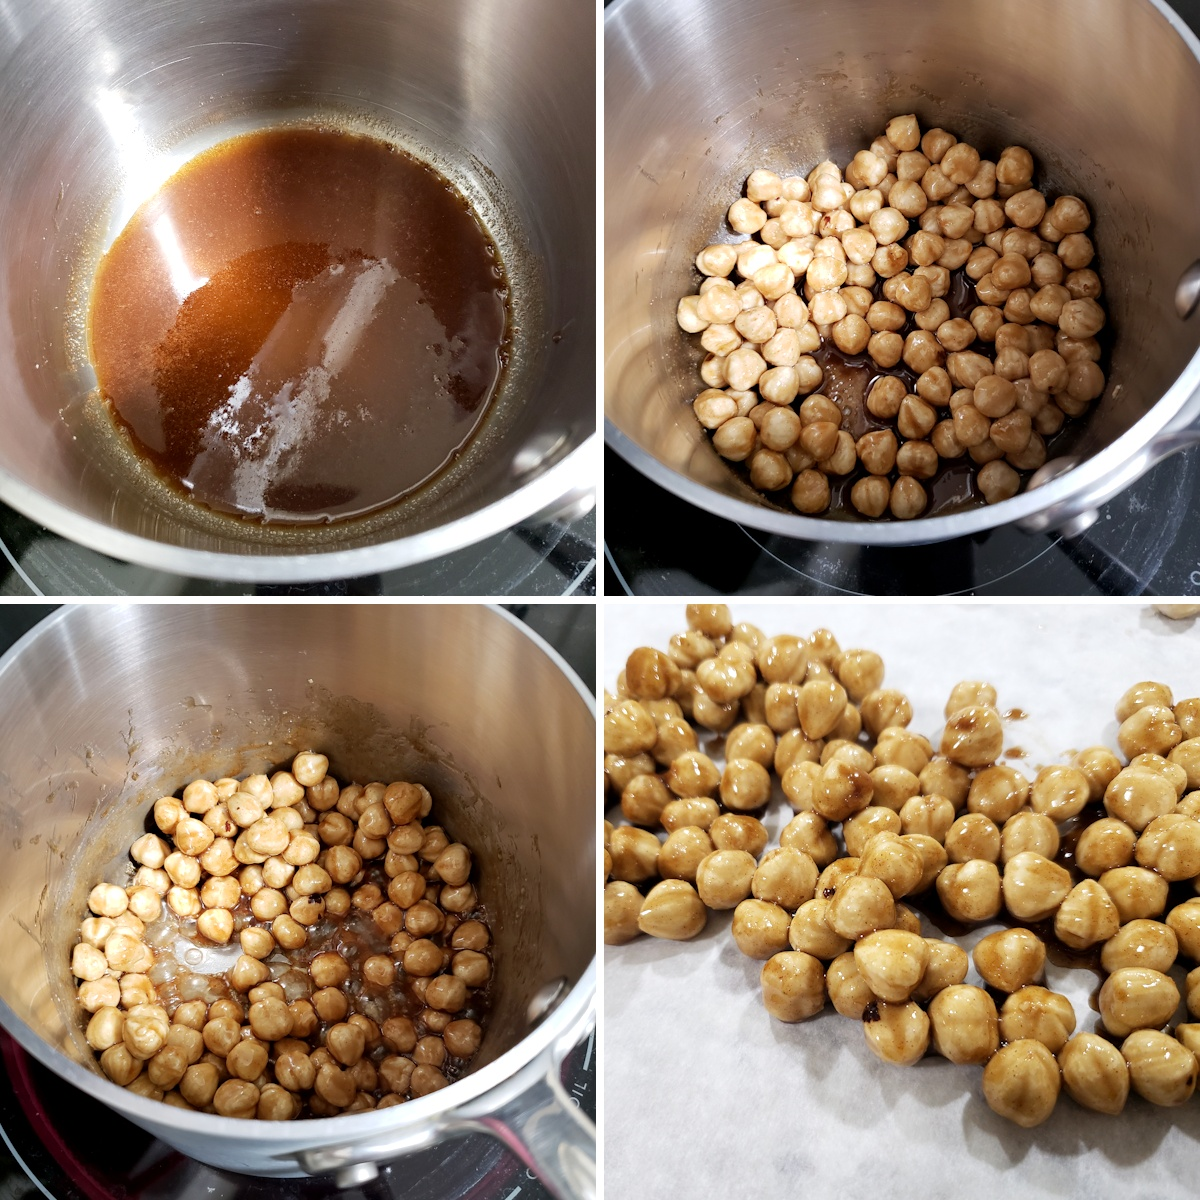 Melting sugar in a saucepan and coating hazelnuts in sugar coating.